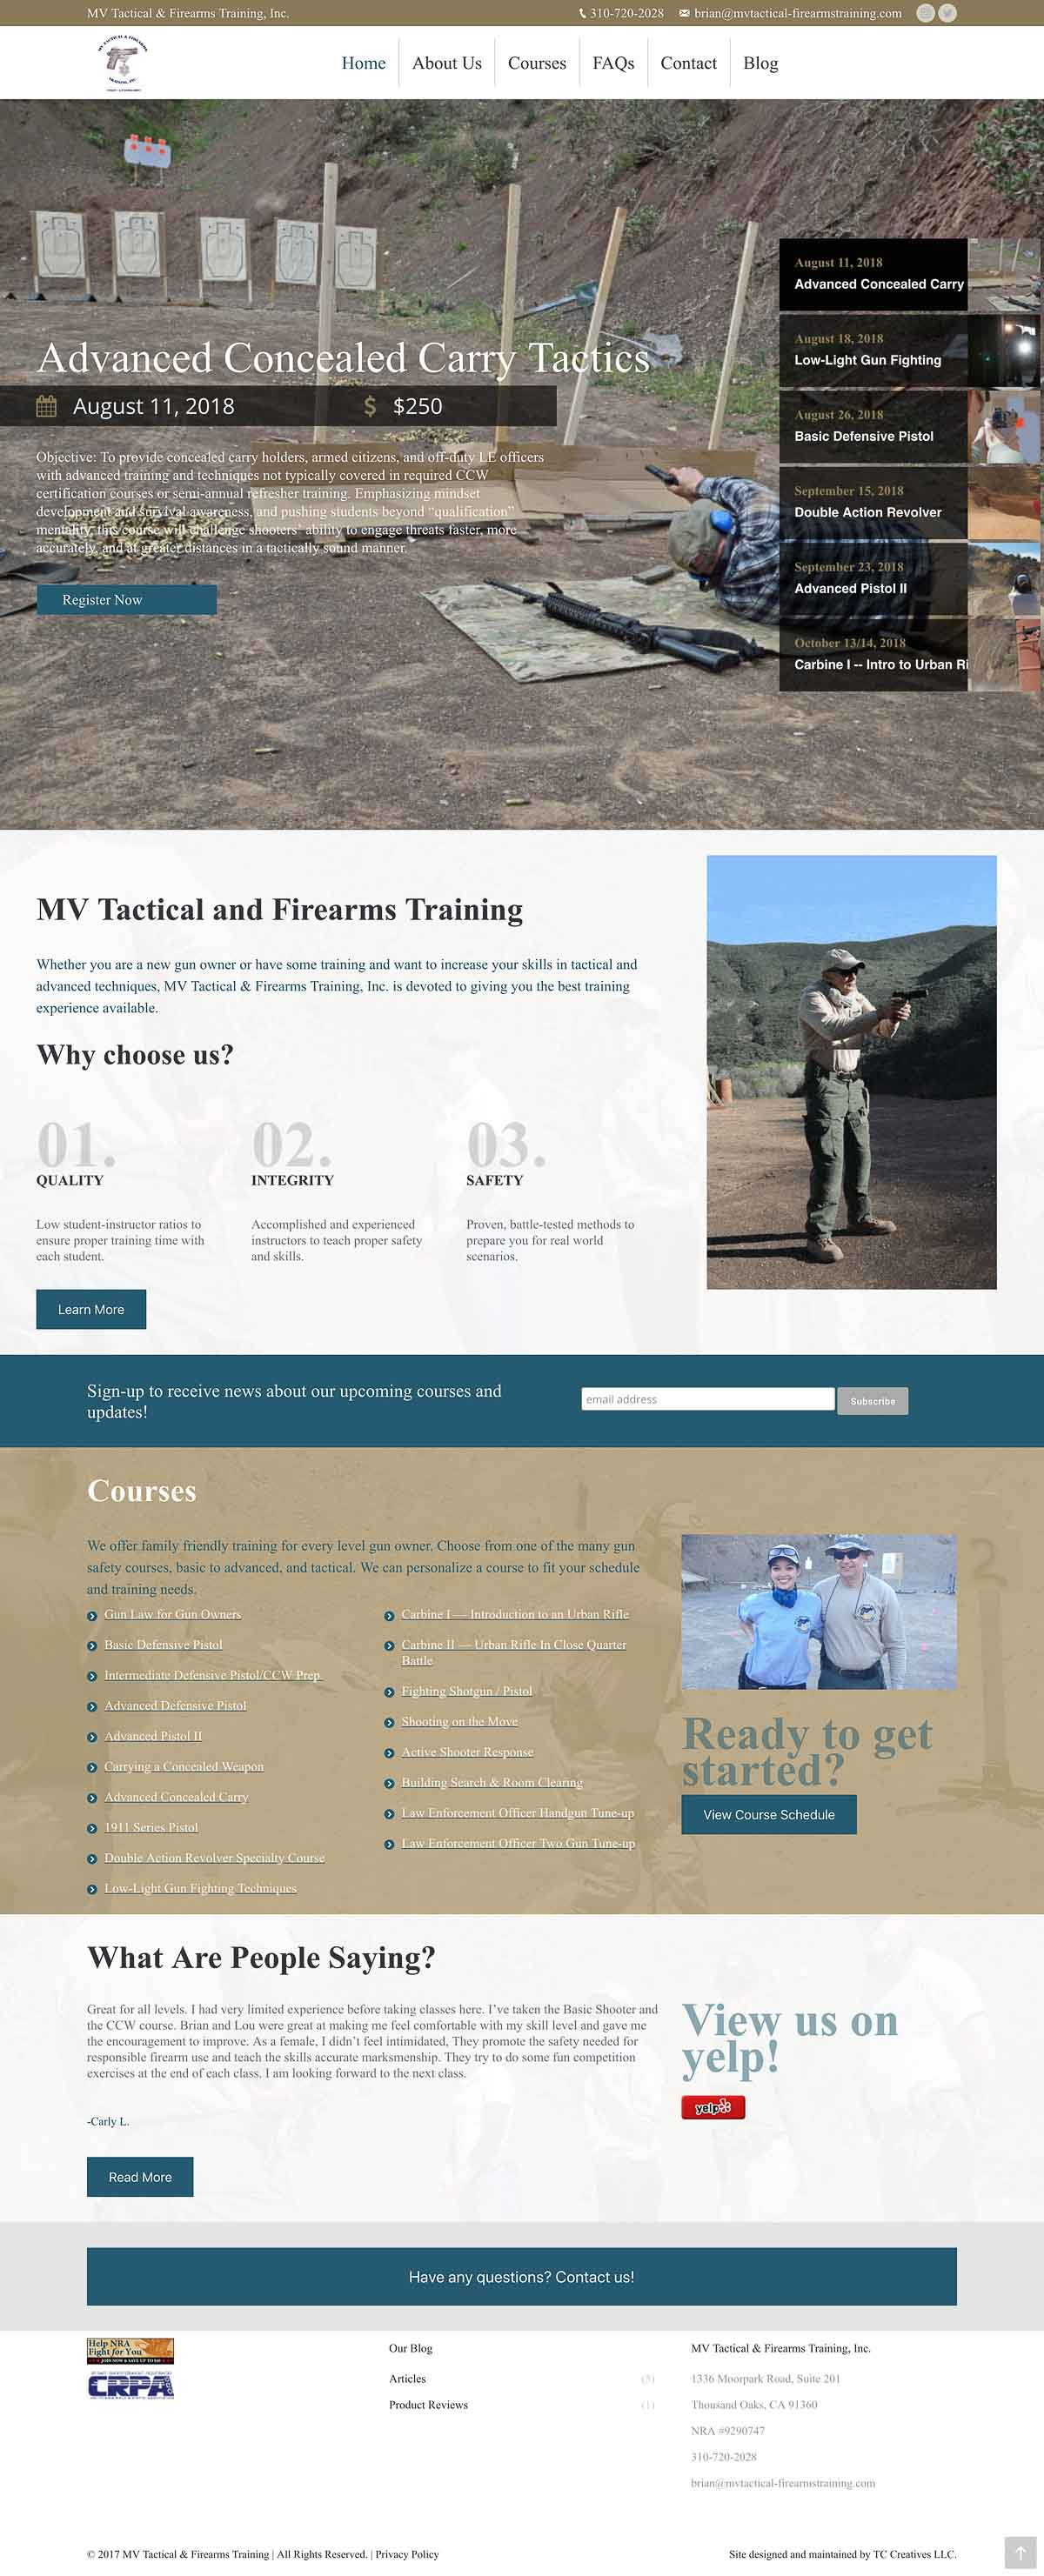 MV Tactical & Firearms Training Website Redesign